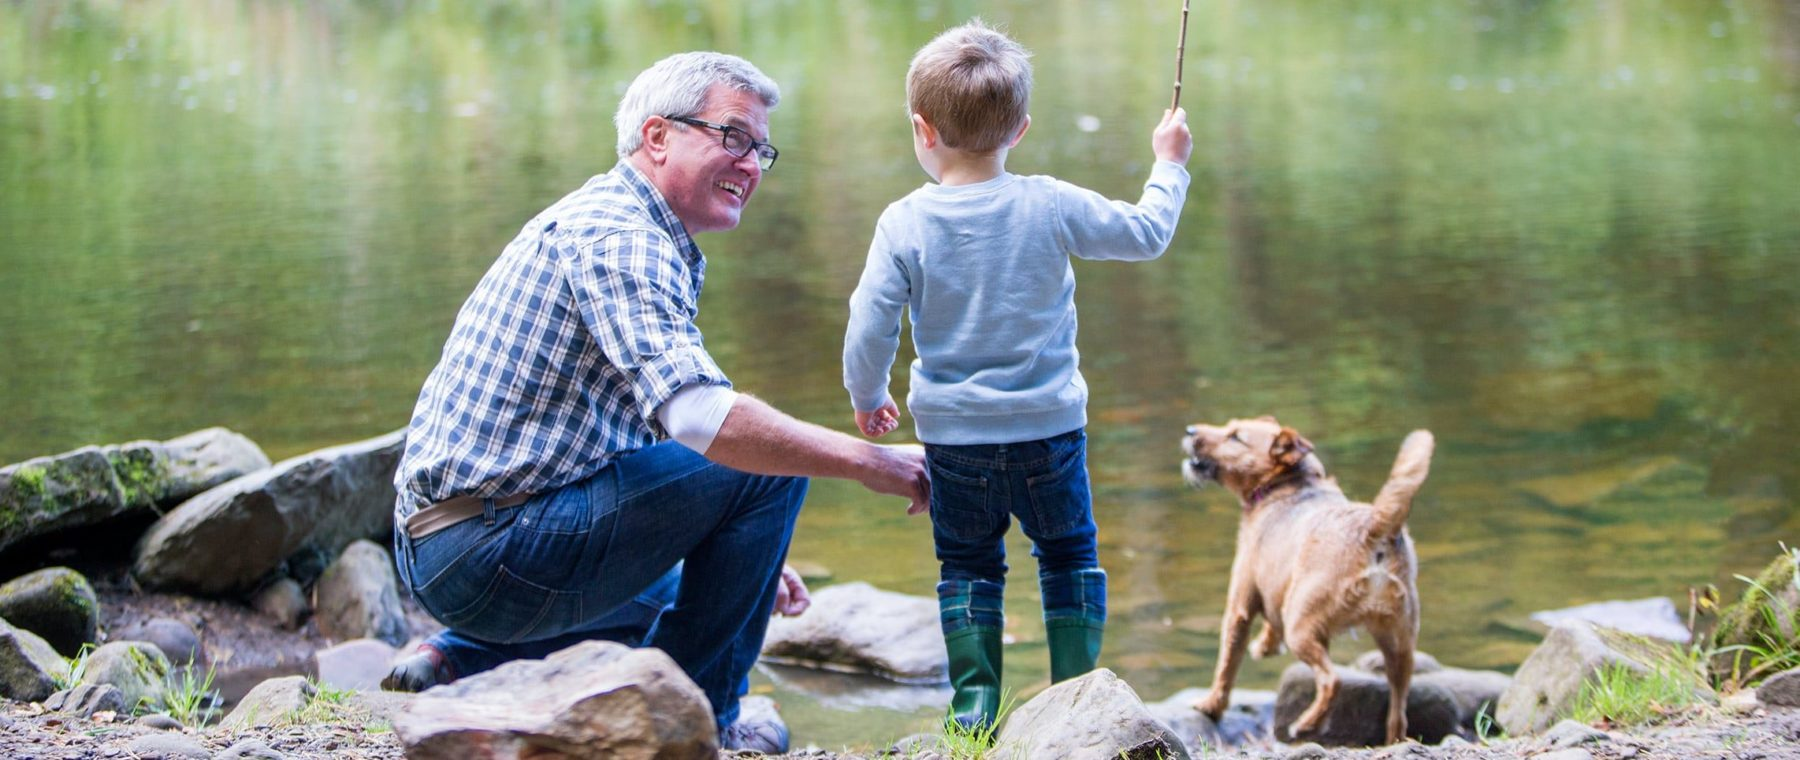 little boy fishing with grandpa and dog